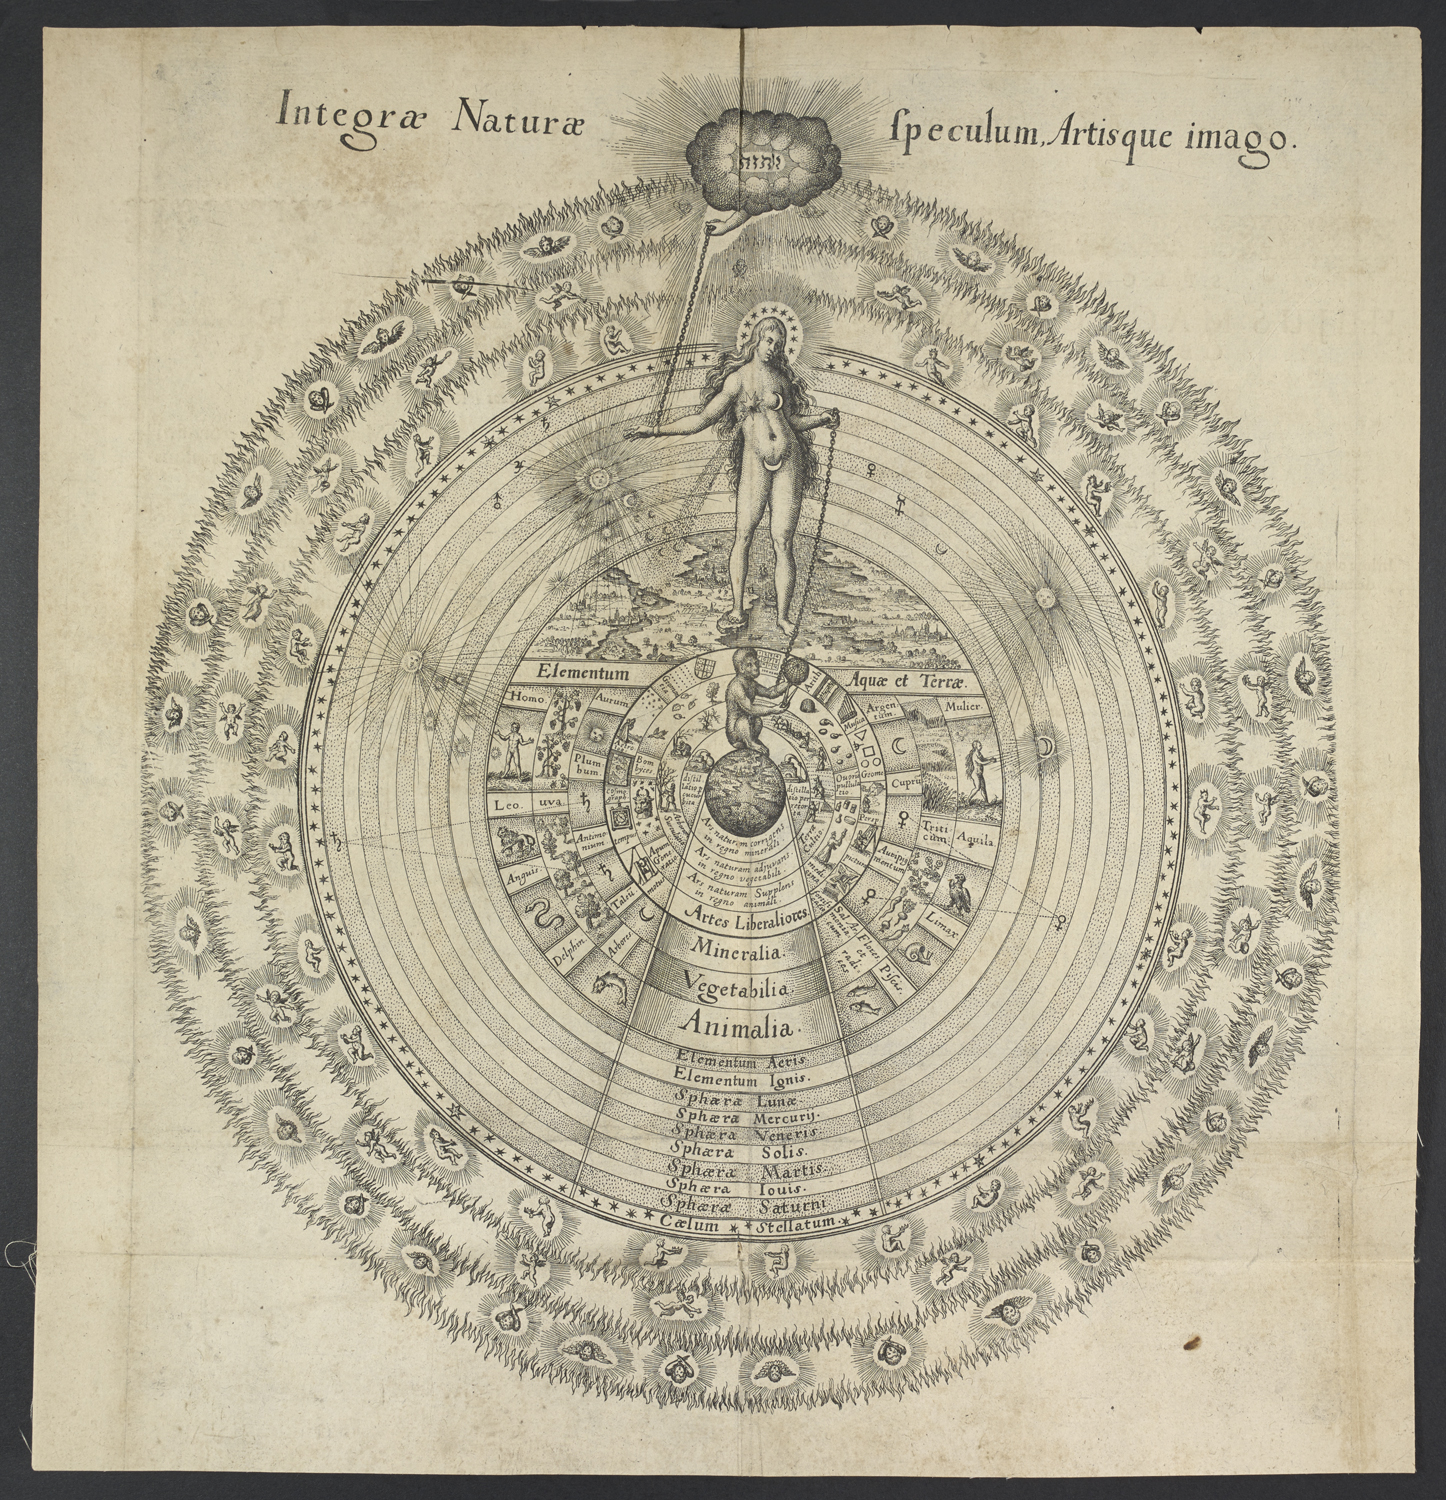 Great Chain of Being Robert Fludd Utriusque Cosmi majoris scilicet et minoris ... on display in Beautiful Science. Oppenheim Frankfurt 1617